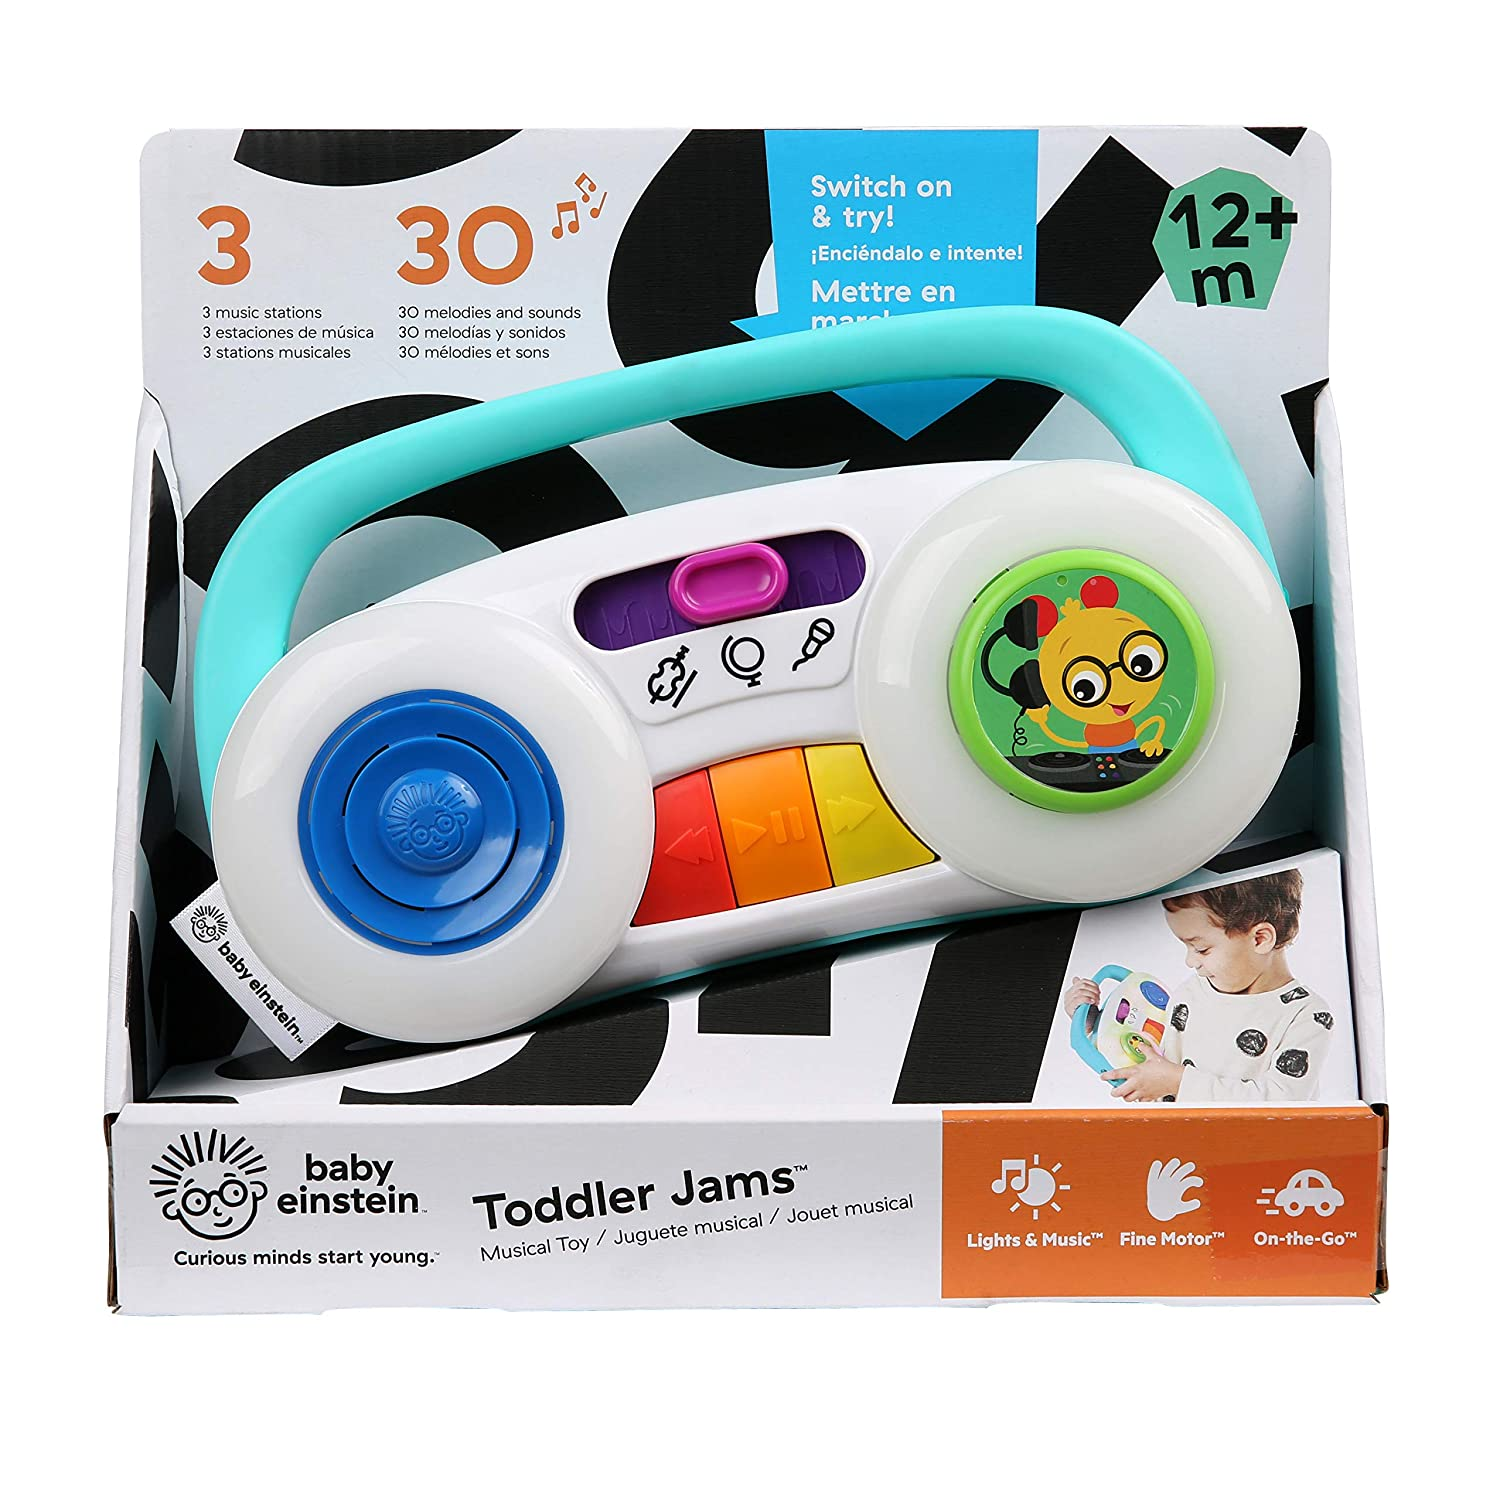 Baby Einstein Toddler Jams Musical Toy 12 Months